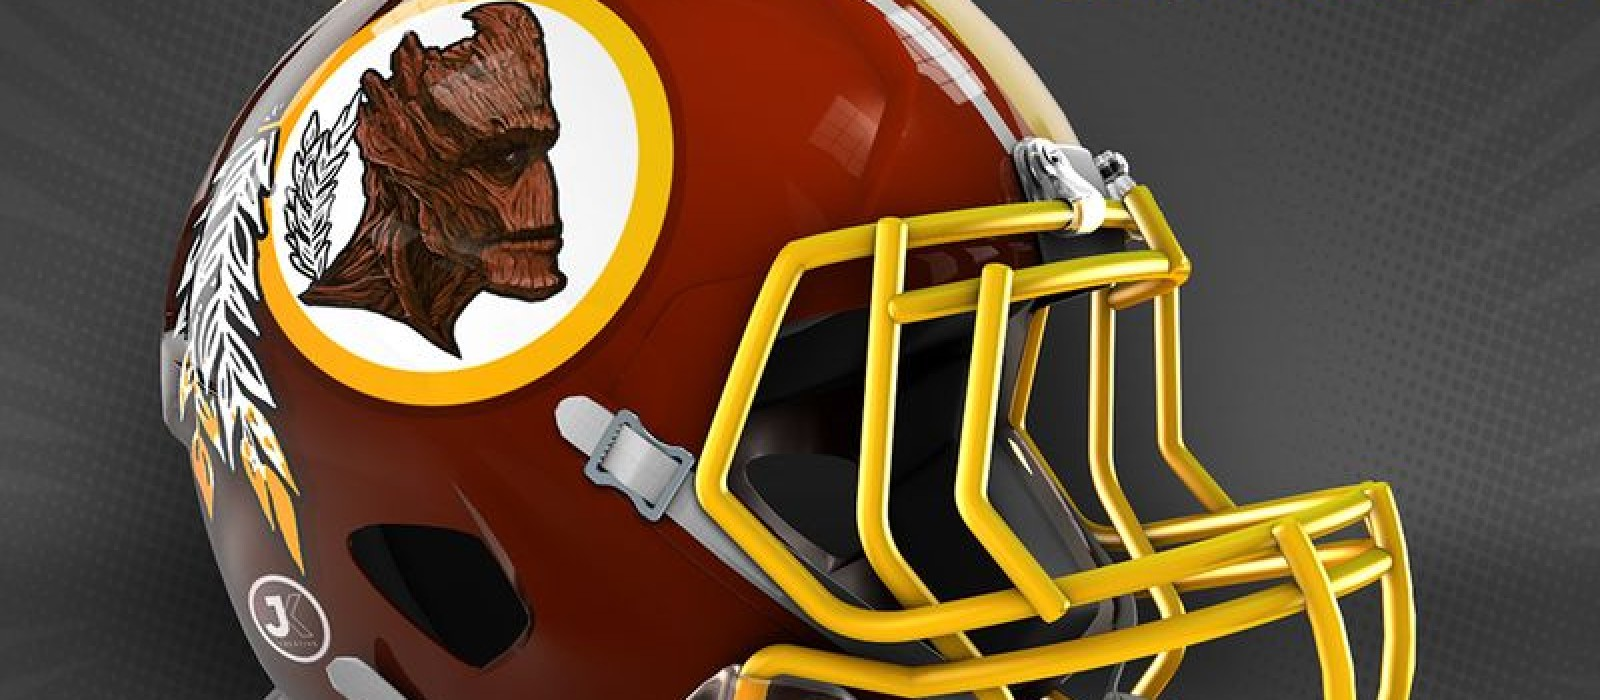 This is what the NFL will look like if Marvel takes over the world